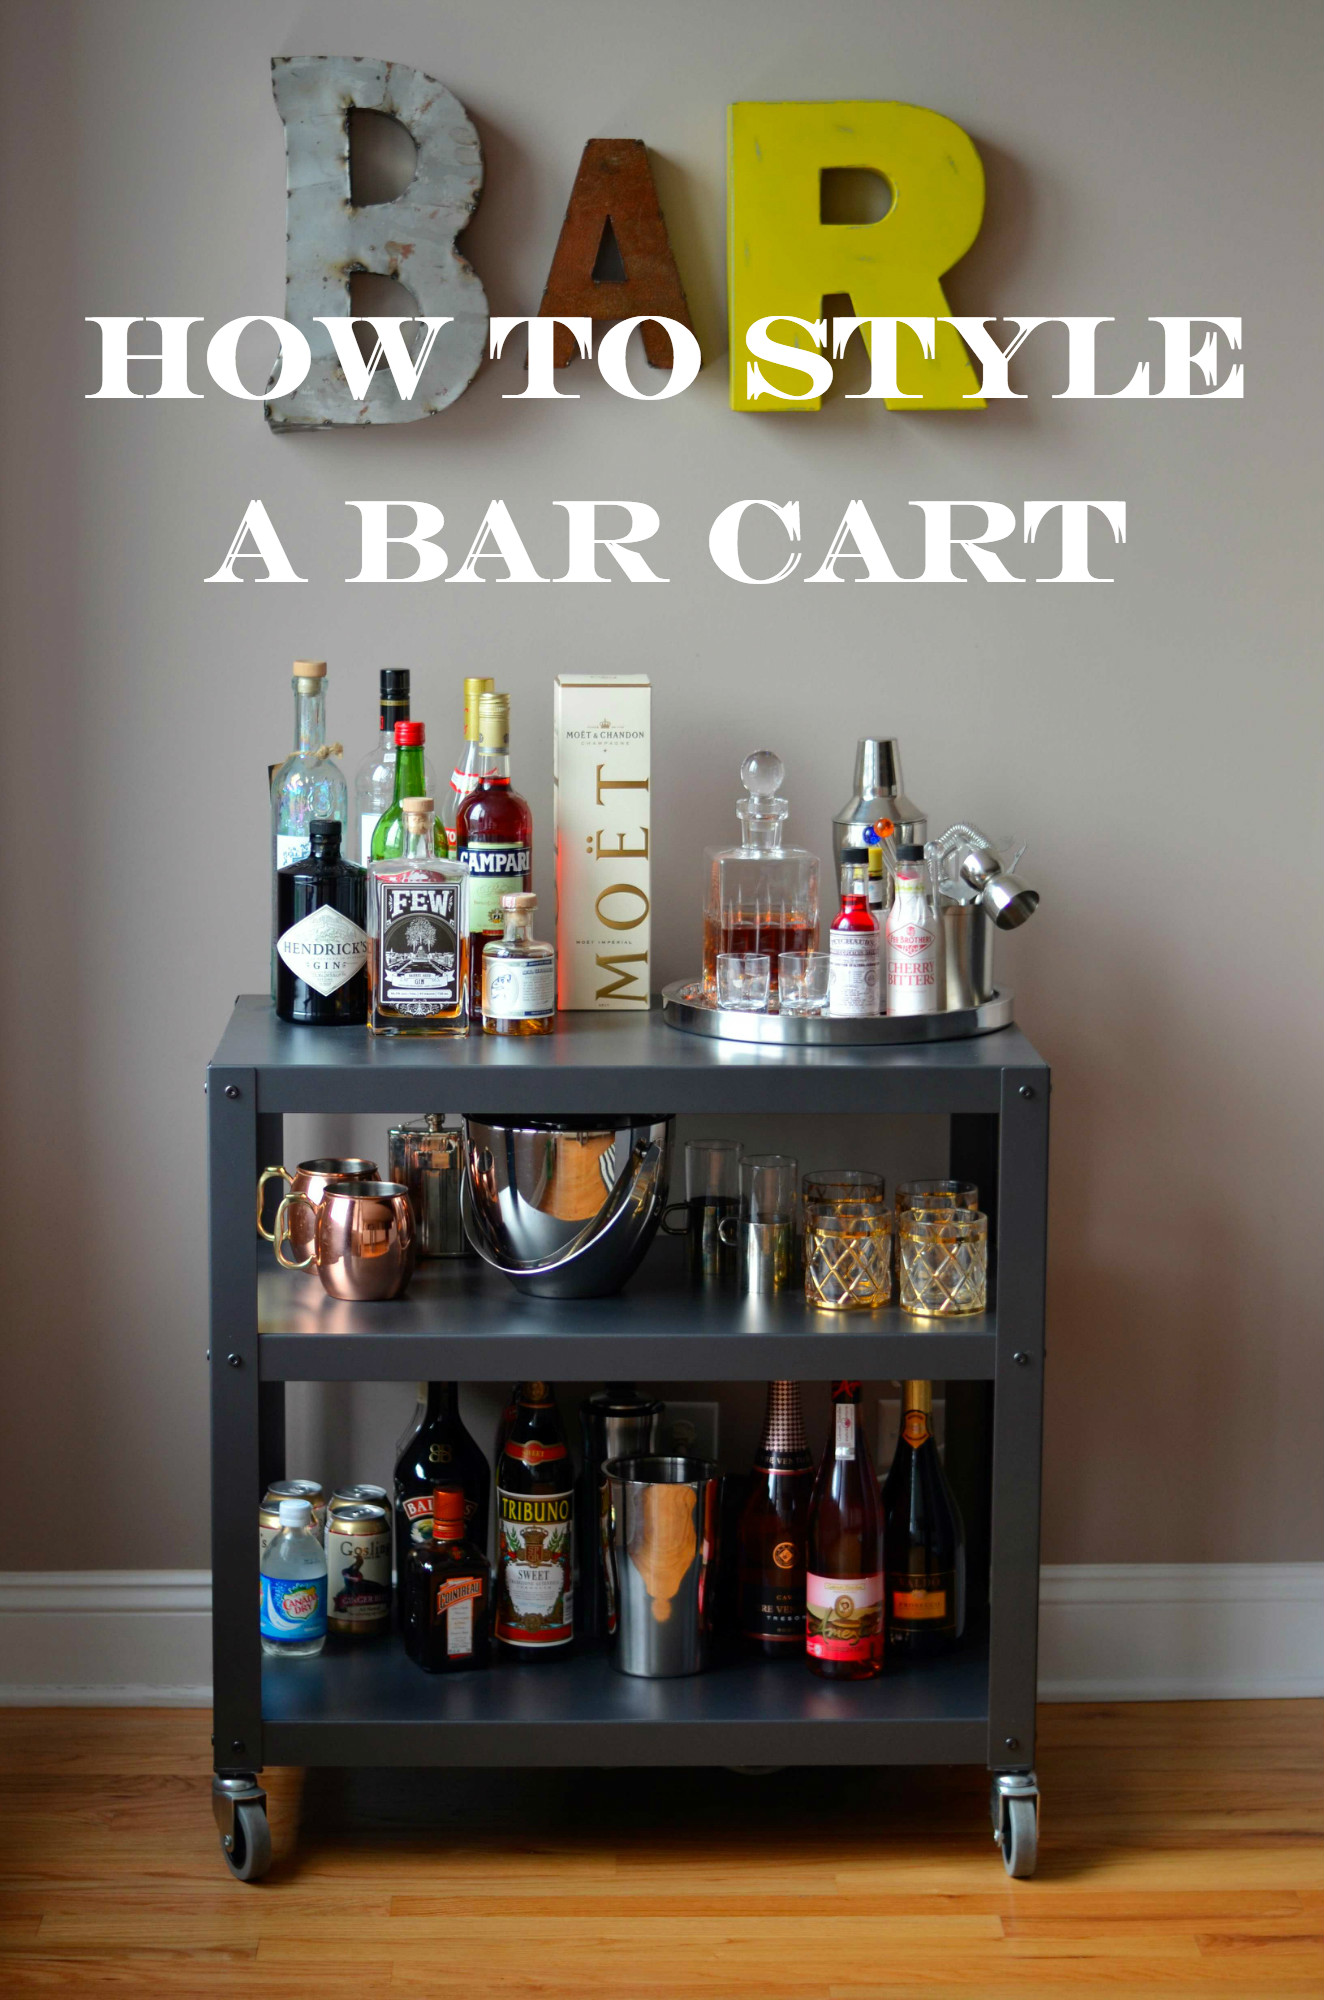 How to Style a Bar Cart | Mikey's In My Kitchen Ideas For Kitchen Bar Cart on ideas for library, ideas for lighting, ideas for patio, ideas for books, ideas for jewelry, ideas for gardening, ideas for lamps, ideas for christmas, ideas for kitchens, ideas for coat rack, ideas for tile, ideas for diy, ideas for china cabinets, ideas for hardwood floors, ideas for bamboo, ideas for rugs, ideas for wallpaper, ideas for bench, ideas for spring, ideas for chair,